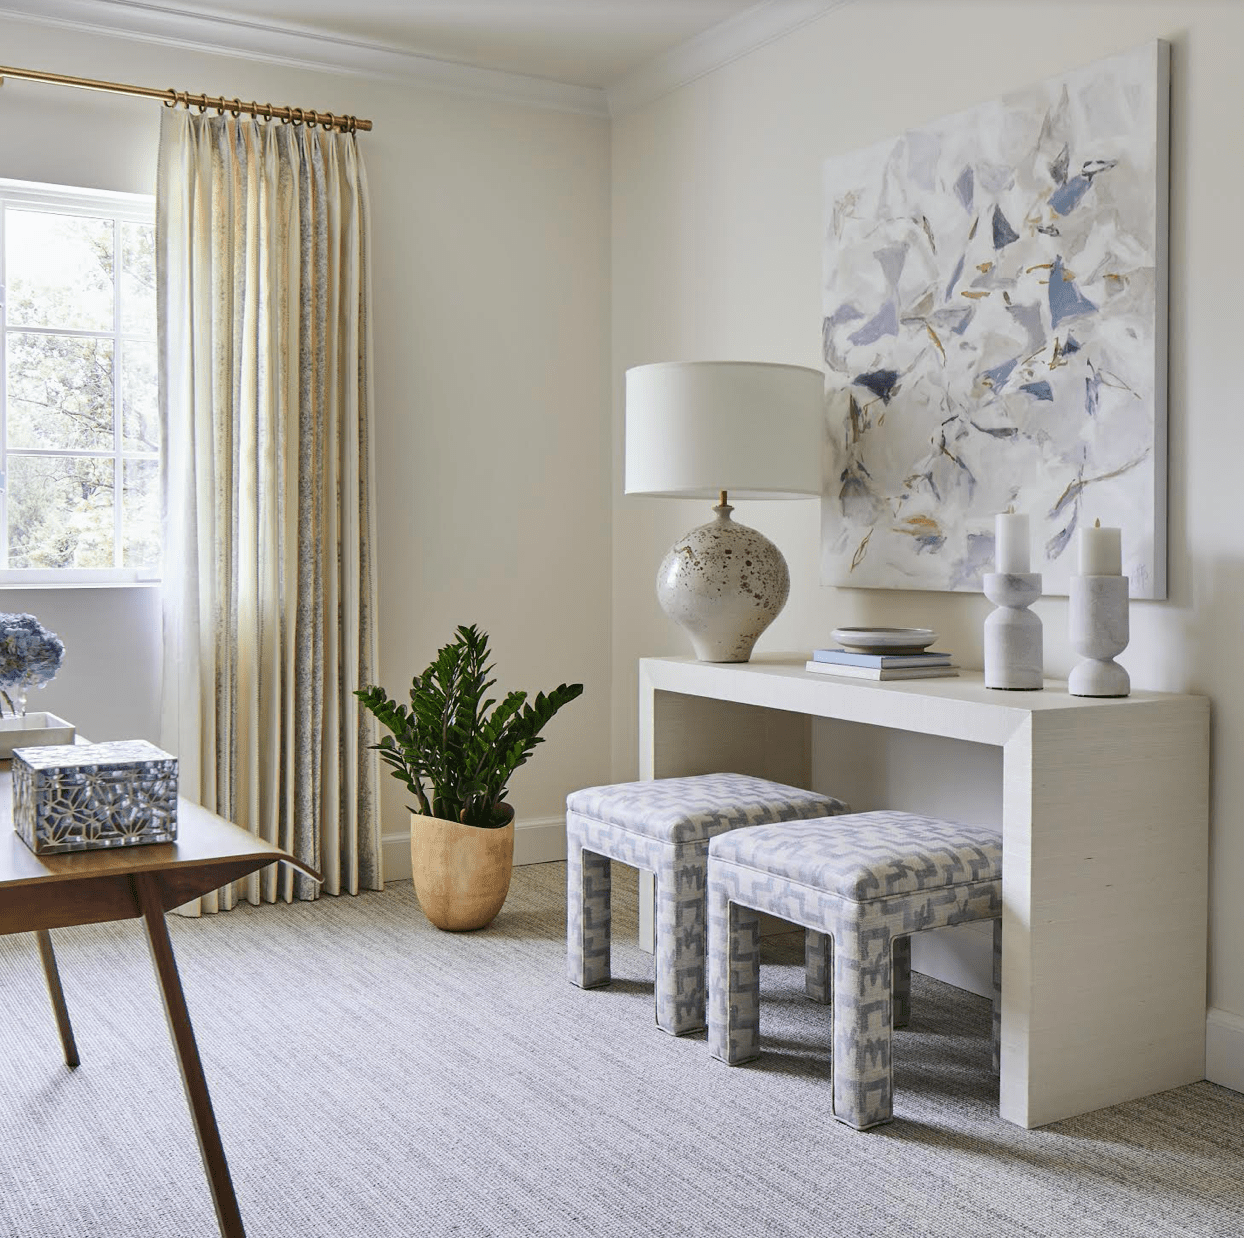 Clean and tidy living room with neutral art and stools.